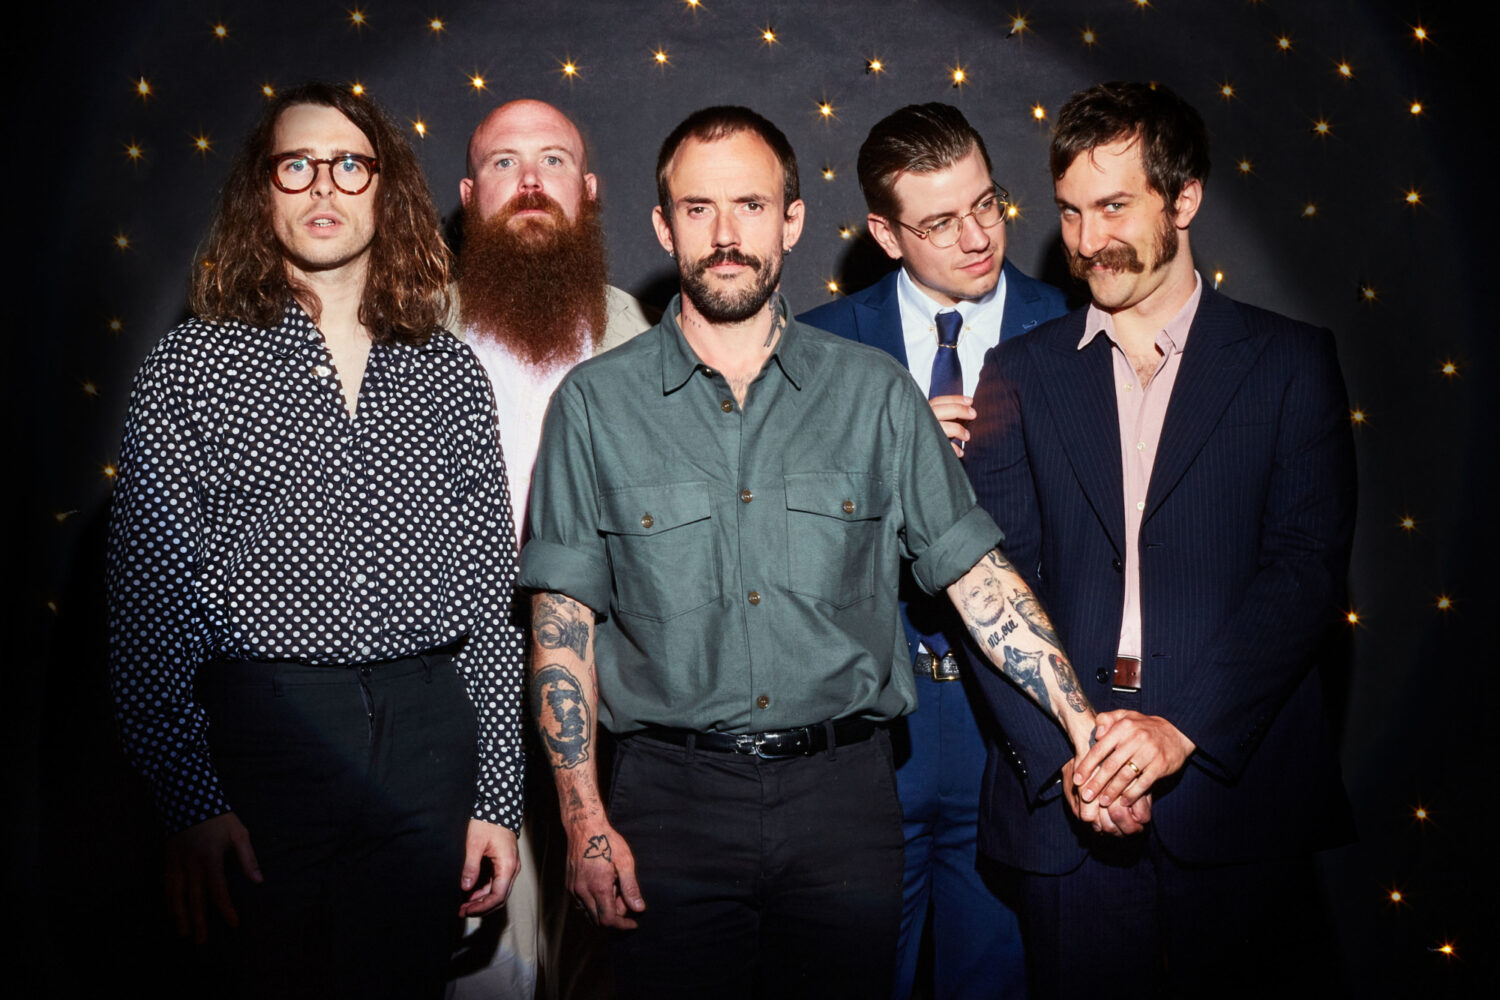 IDLES cover Sharon Van Etten's 'Peace Signs'